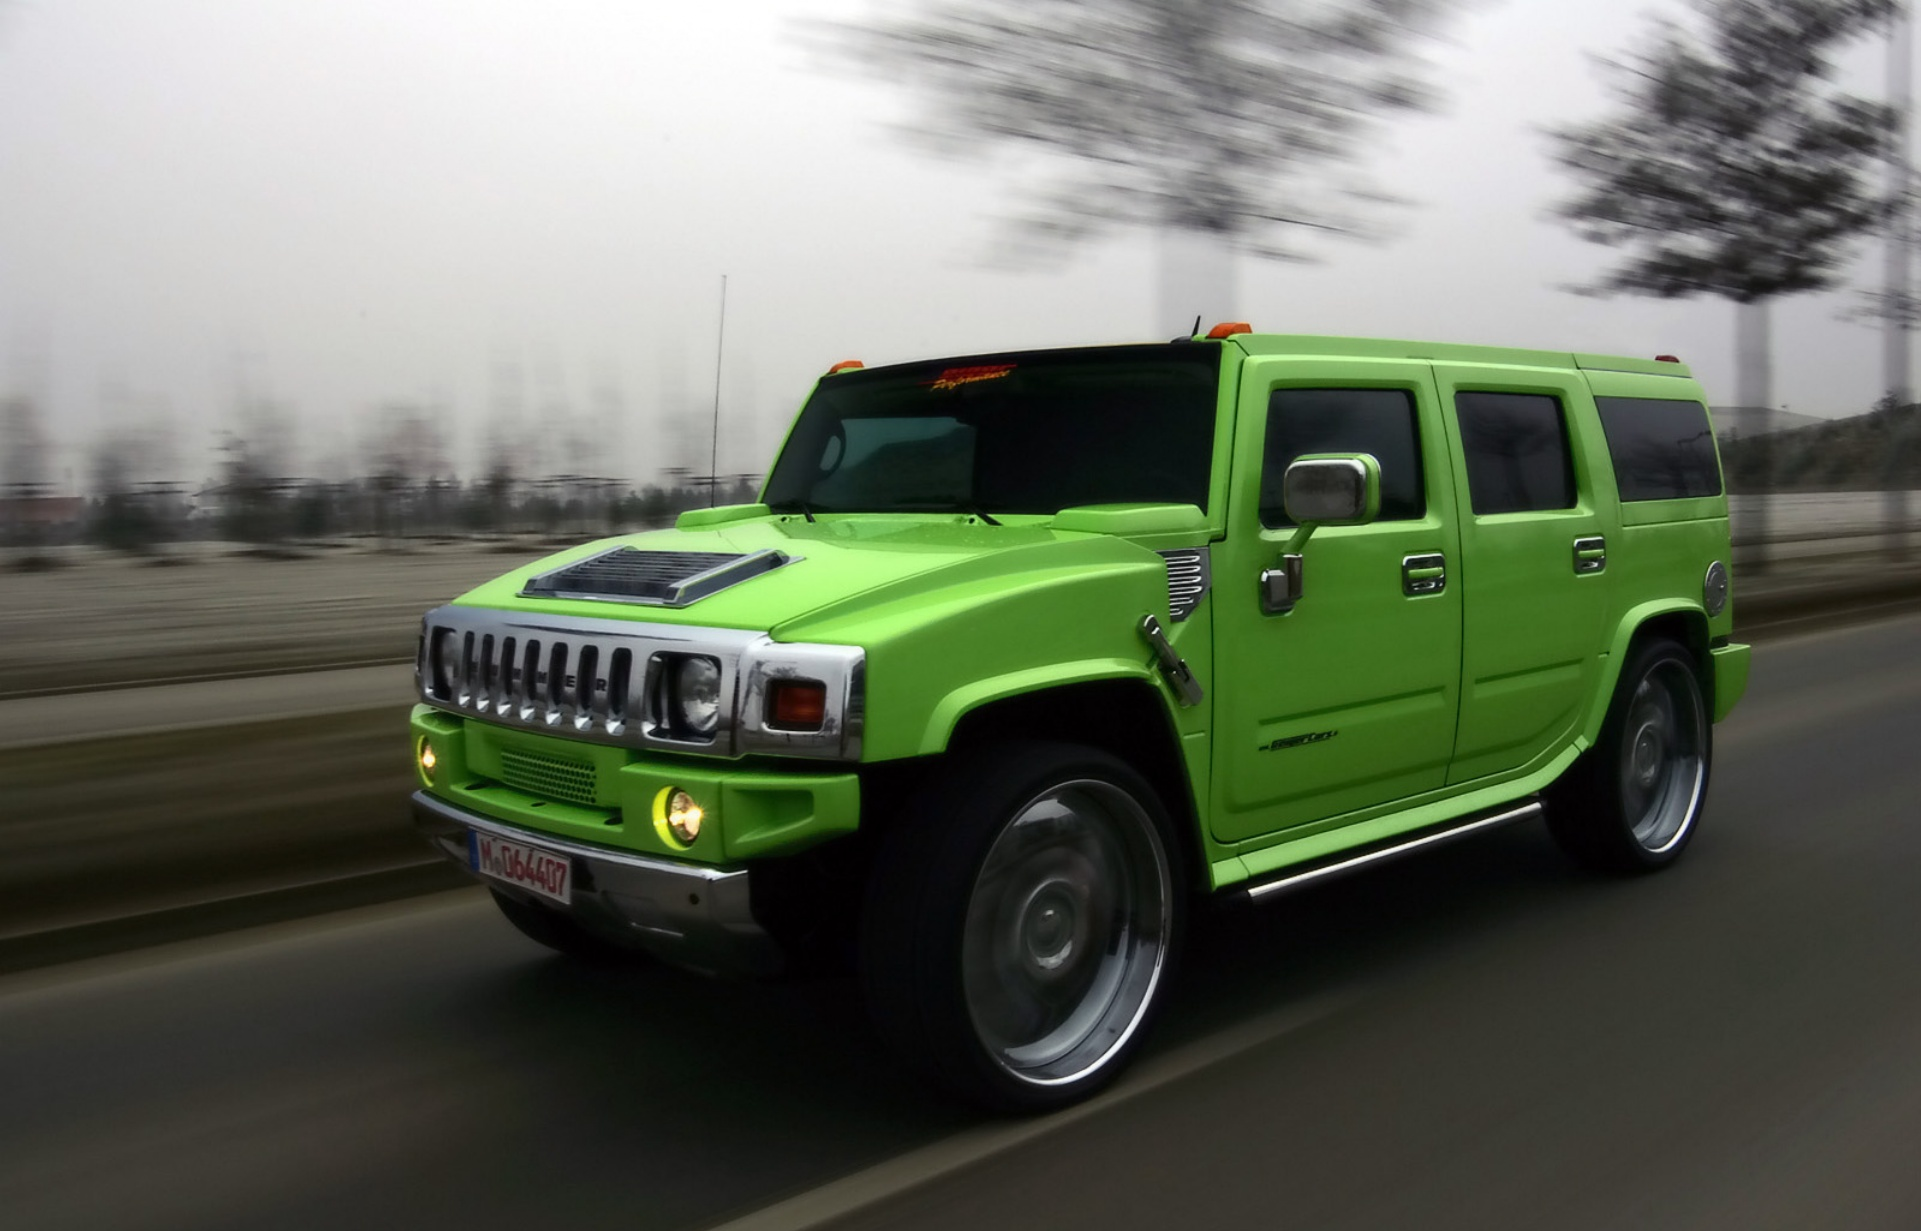 2005 hummer h2 tuning 4x4 offroad suv f wallpaper. Black Bedroom Furniture Sets. Home Design Ideas